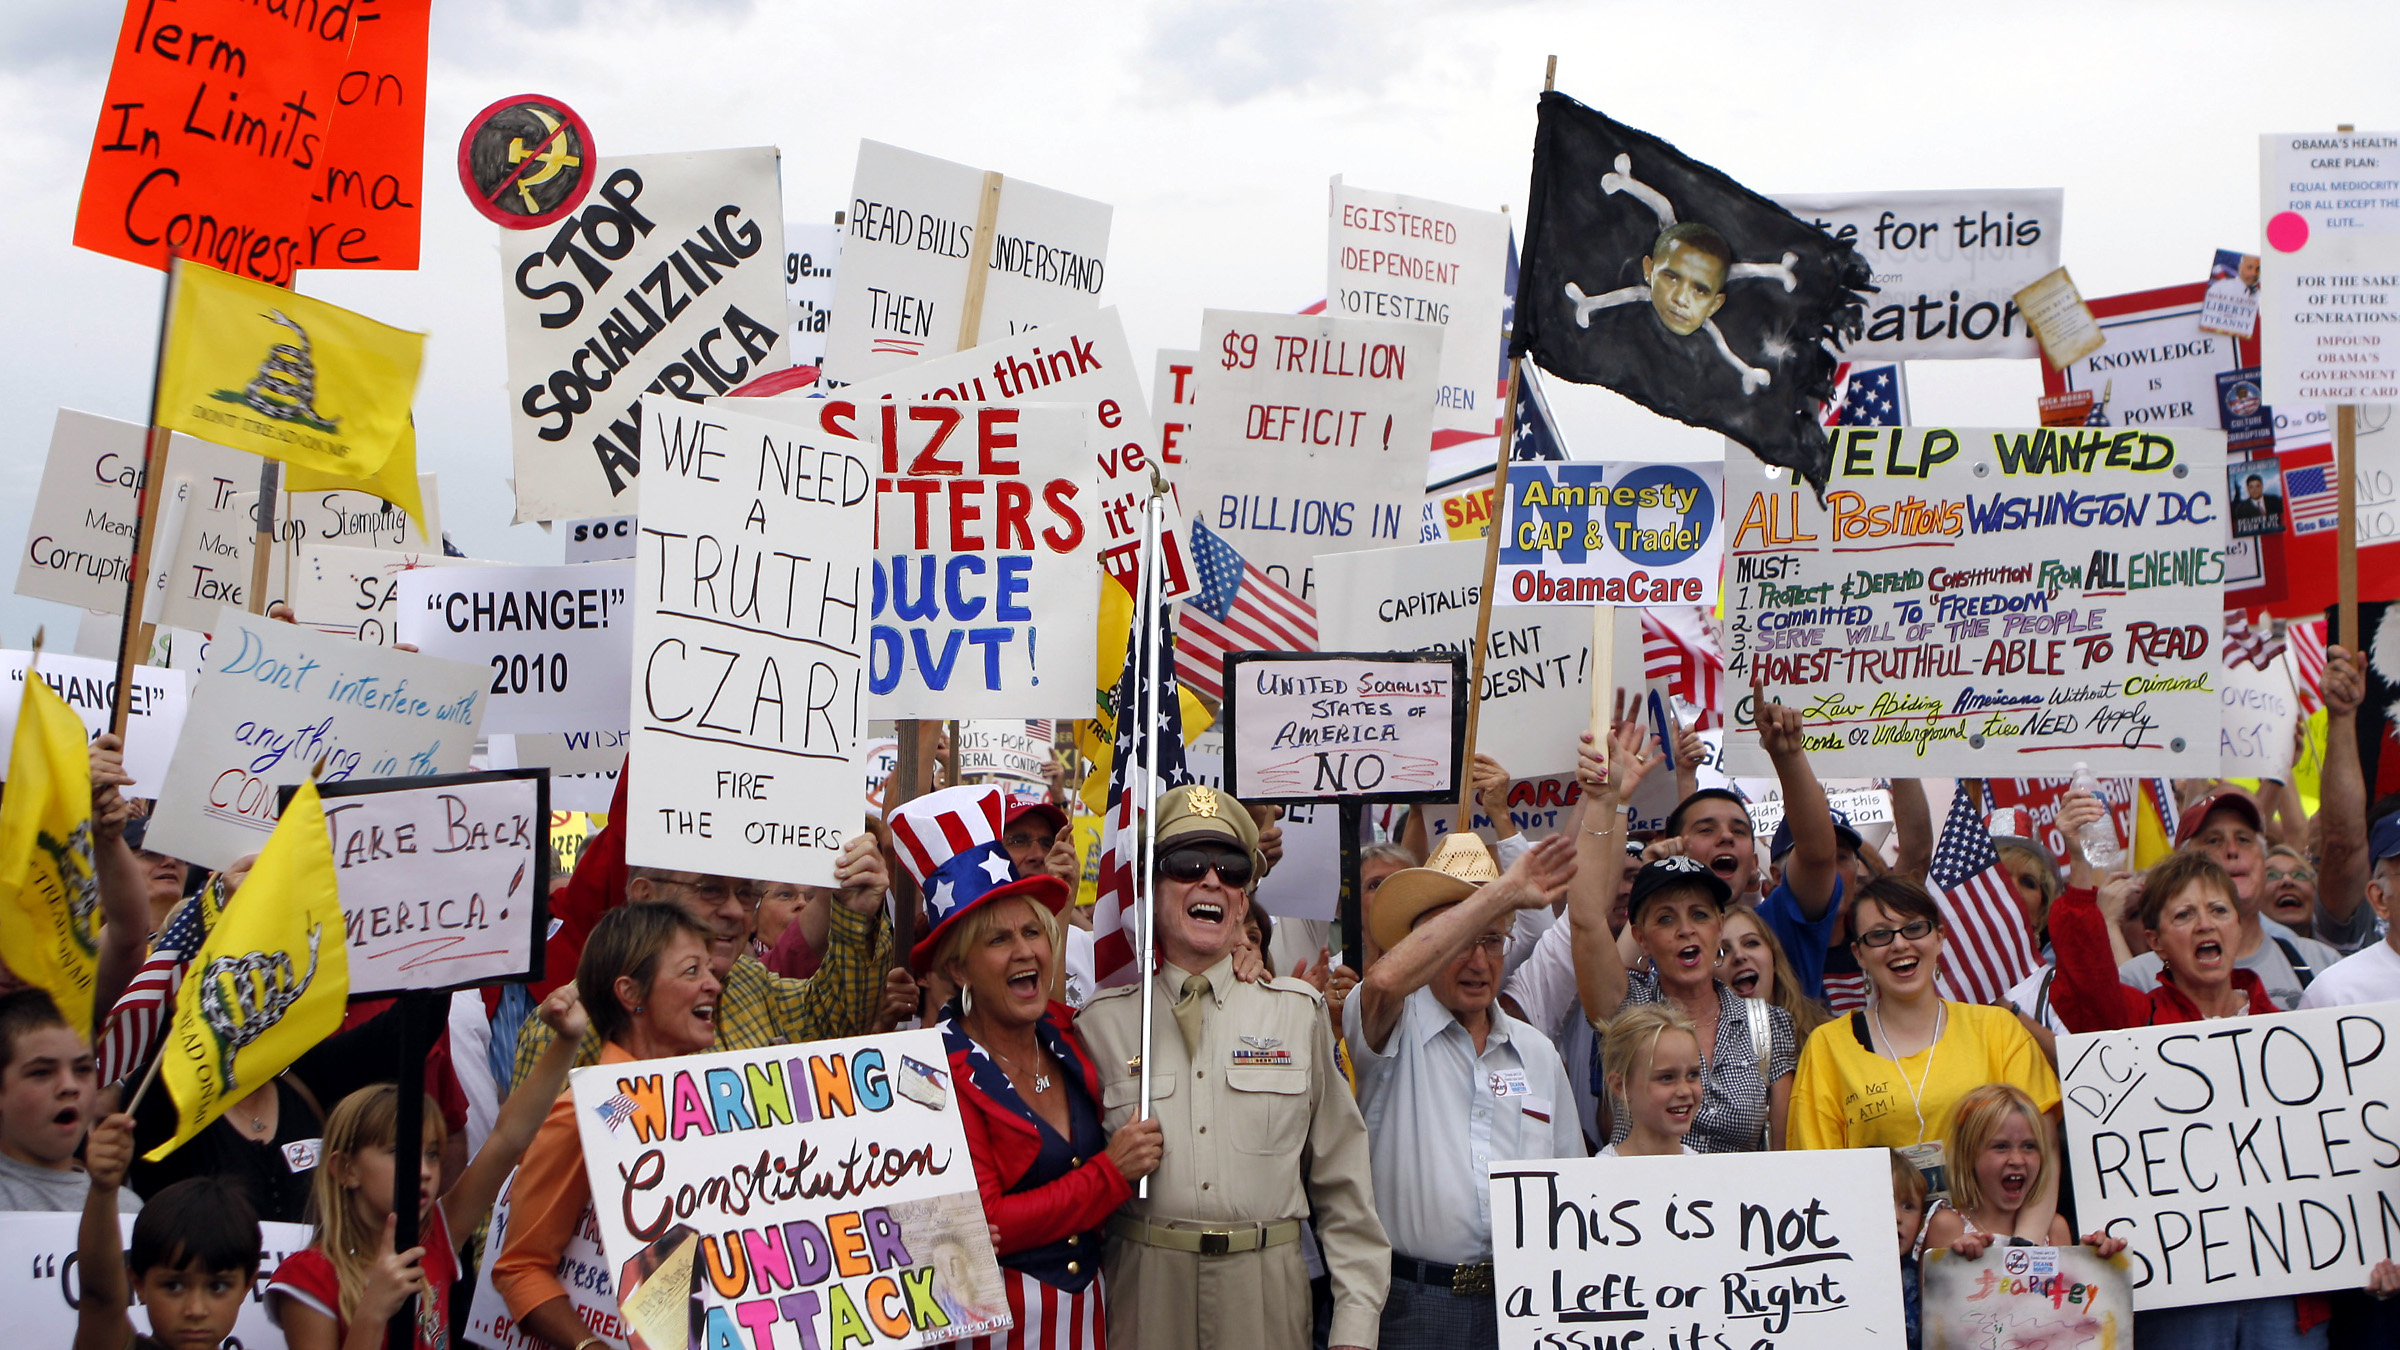 """People hold signs during a """"tea party"""" protest in Flagstaff, Arizona August 31, 2009. Organizers say the event is an effort to work against members of Congress who voted for higher spending and taxes."""